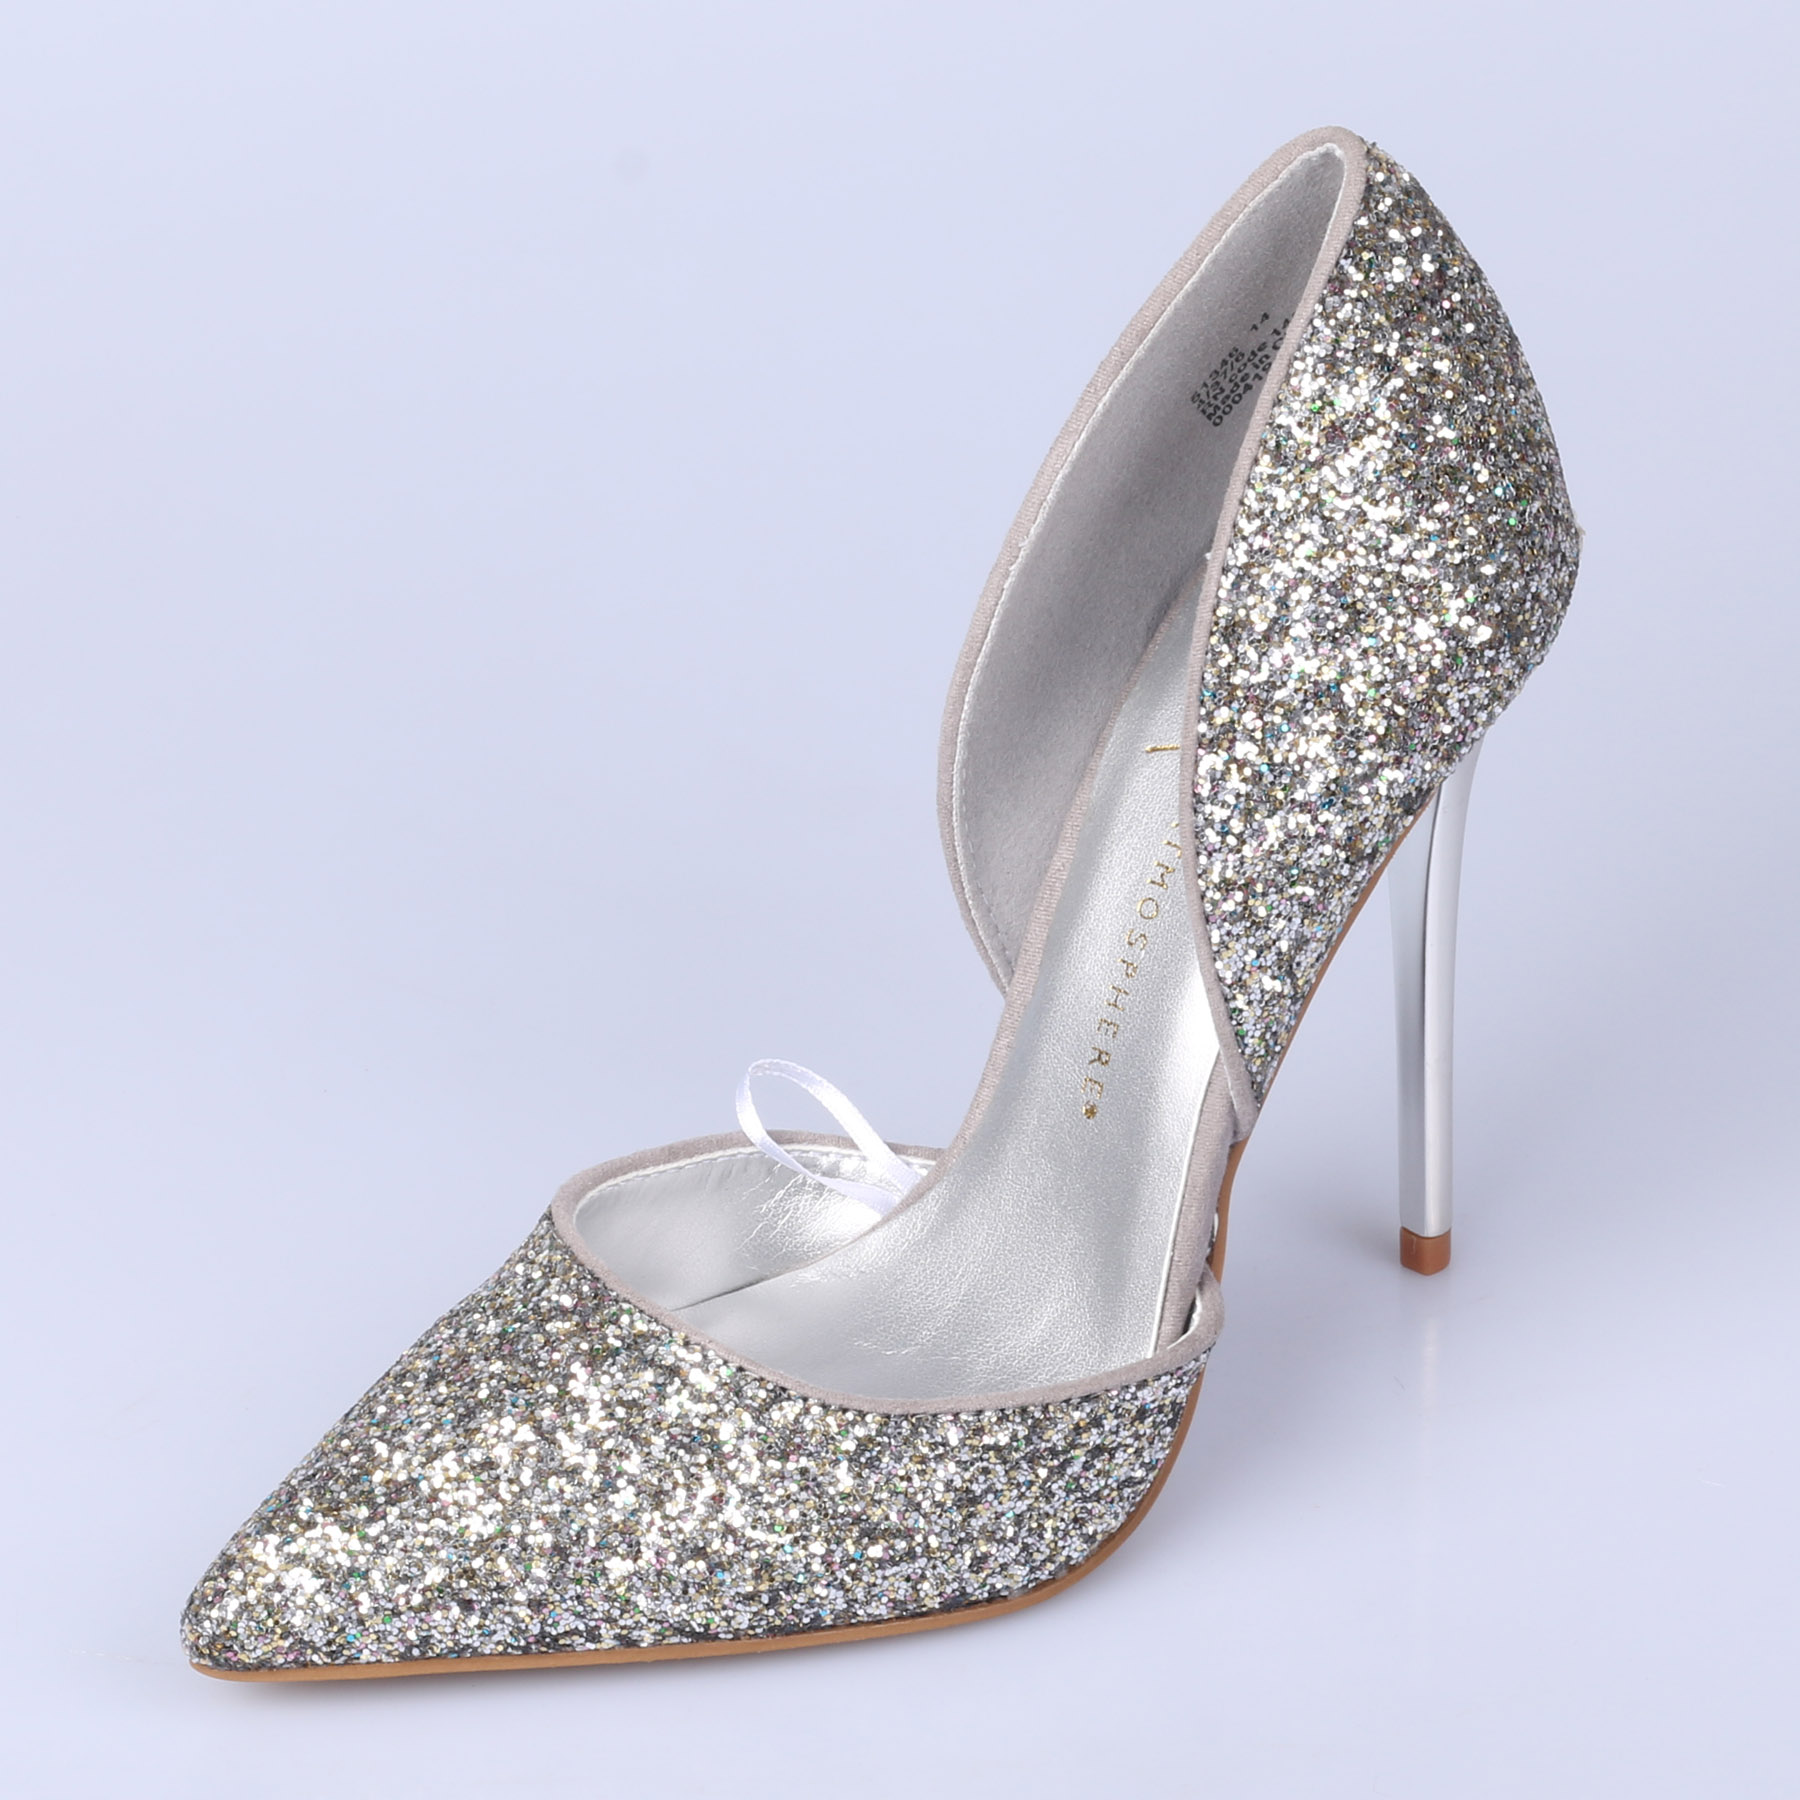 Fashion spring and autumn brief shallow mouth sexy pointed toe glitter high-heeled shoes wedding shoes pumps shoes woman spring and autumn high heeled 11cm sexy shallow mouth thin heels flock pointed toe singles shoes size 35 39